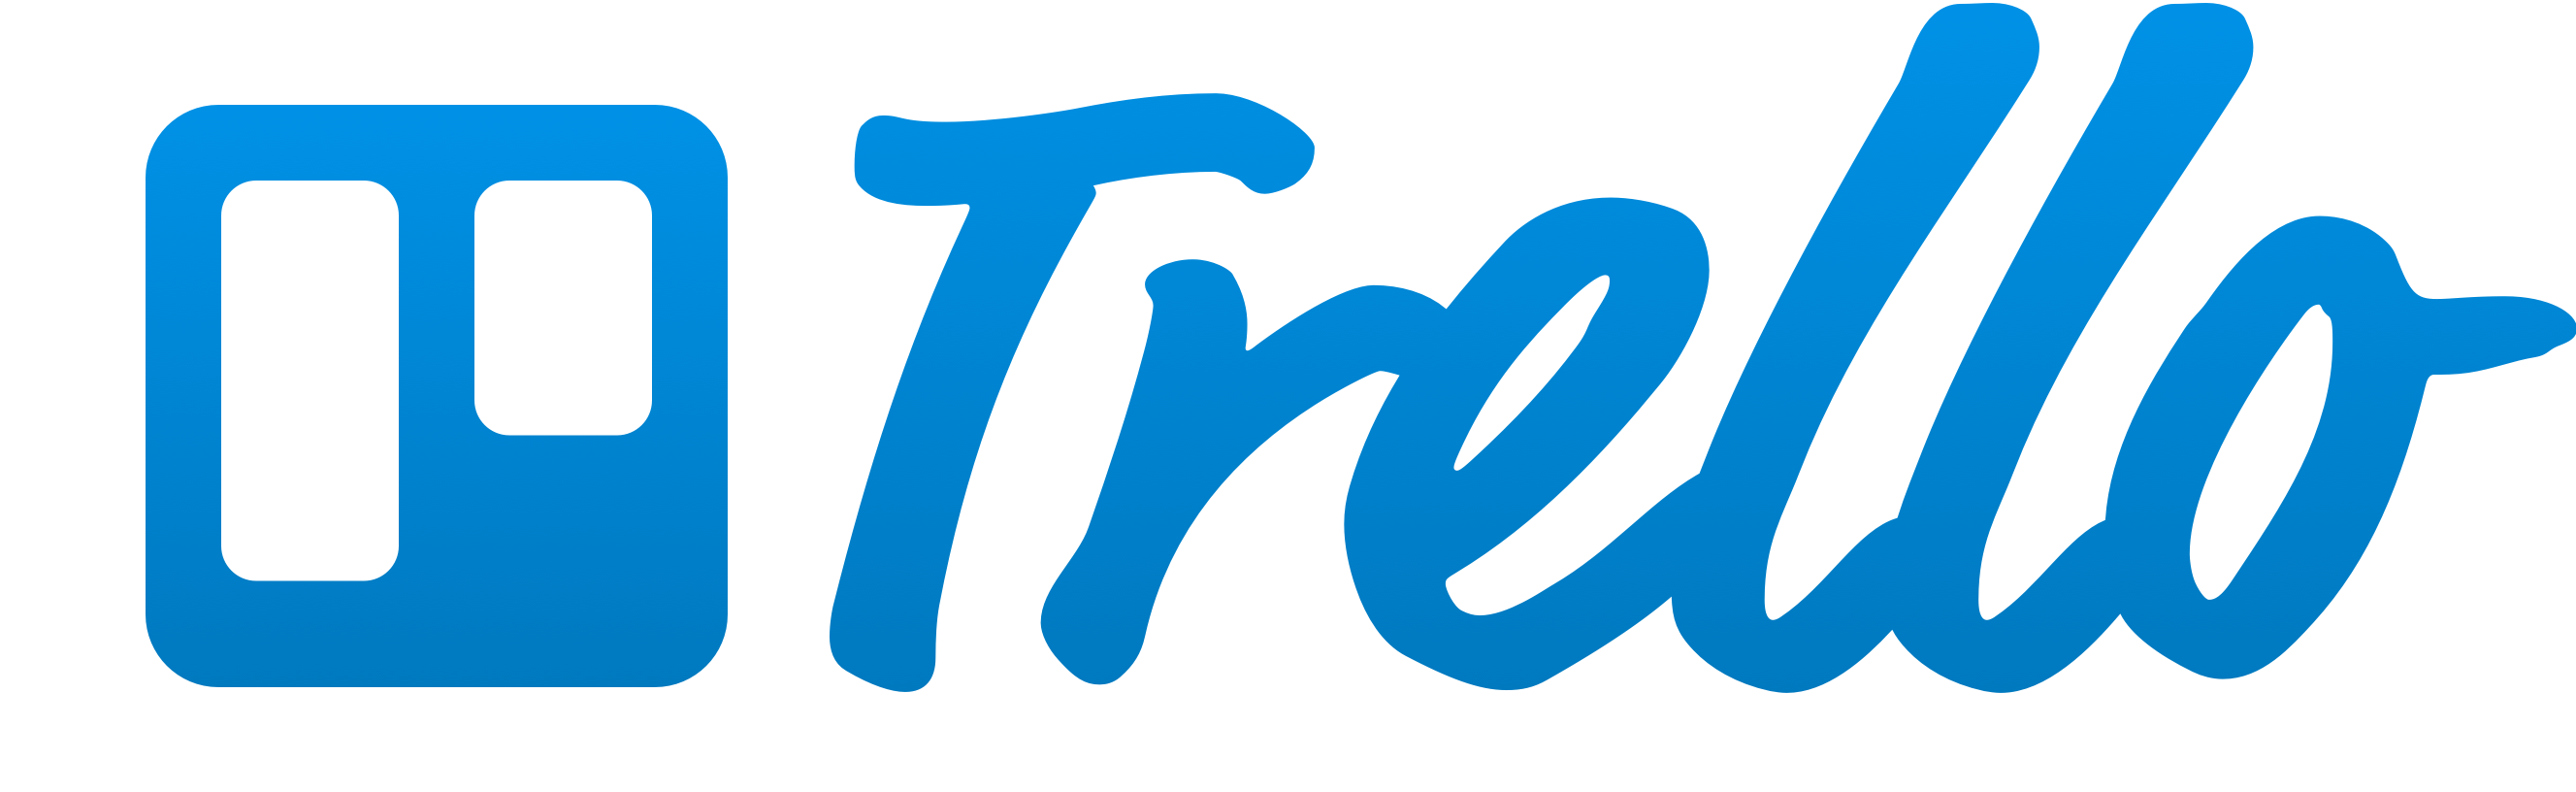 trello profile